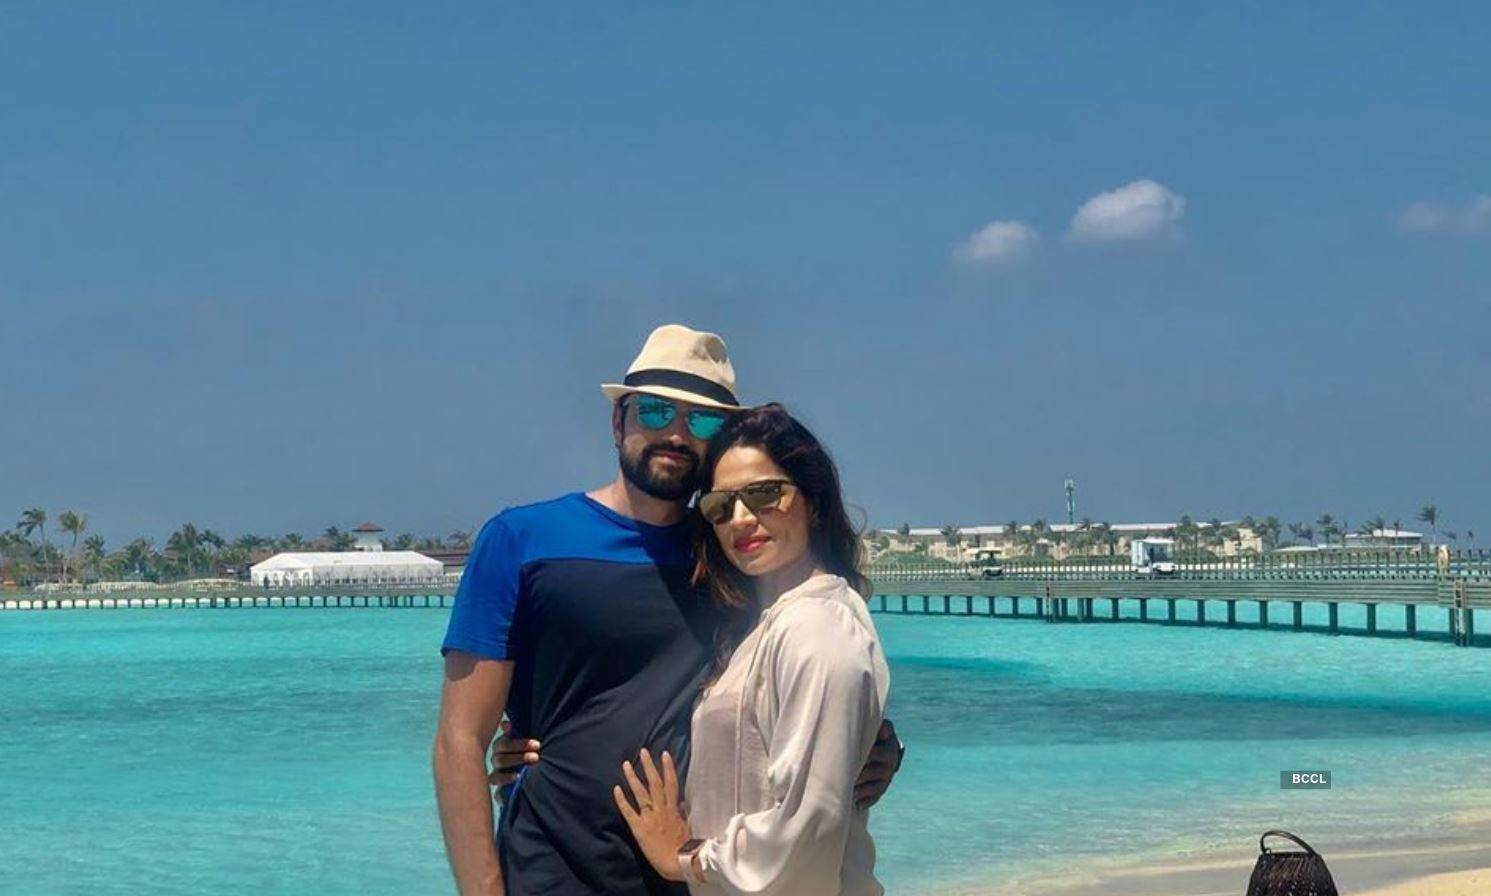 Kumkum Bhagya actress Shikha Singh teases fans with her Maldives vacation pictures